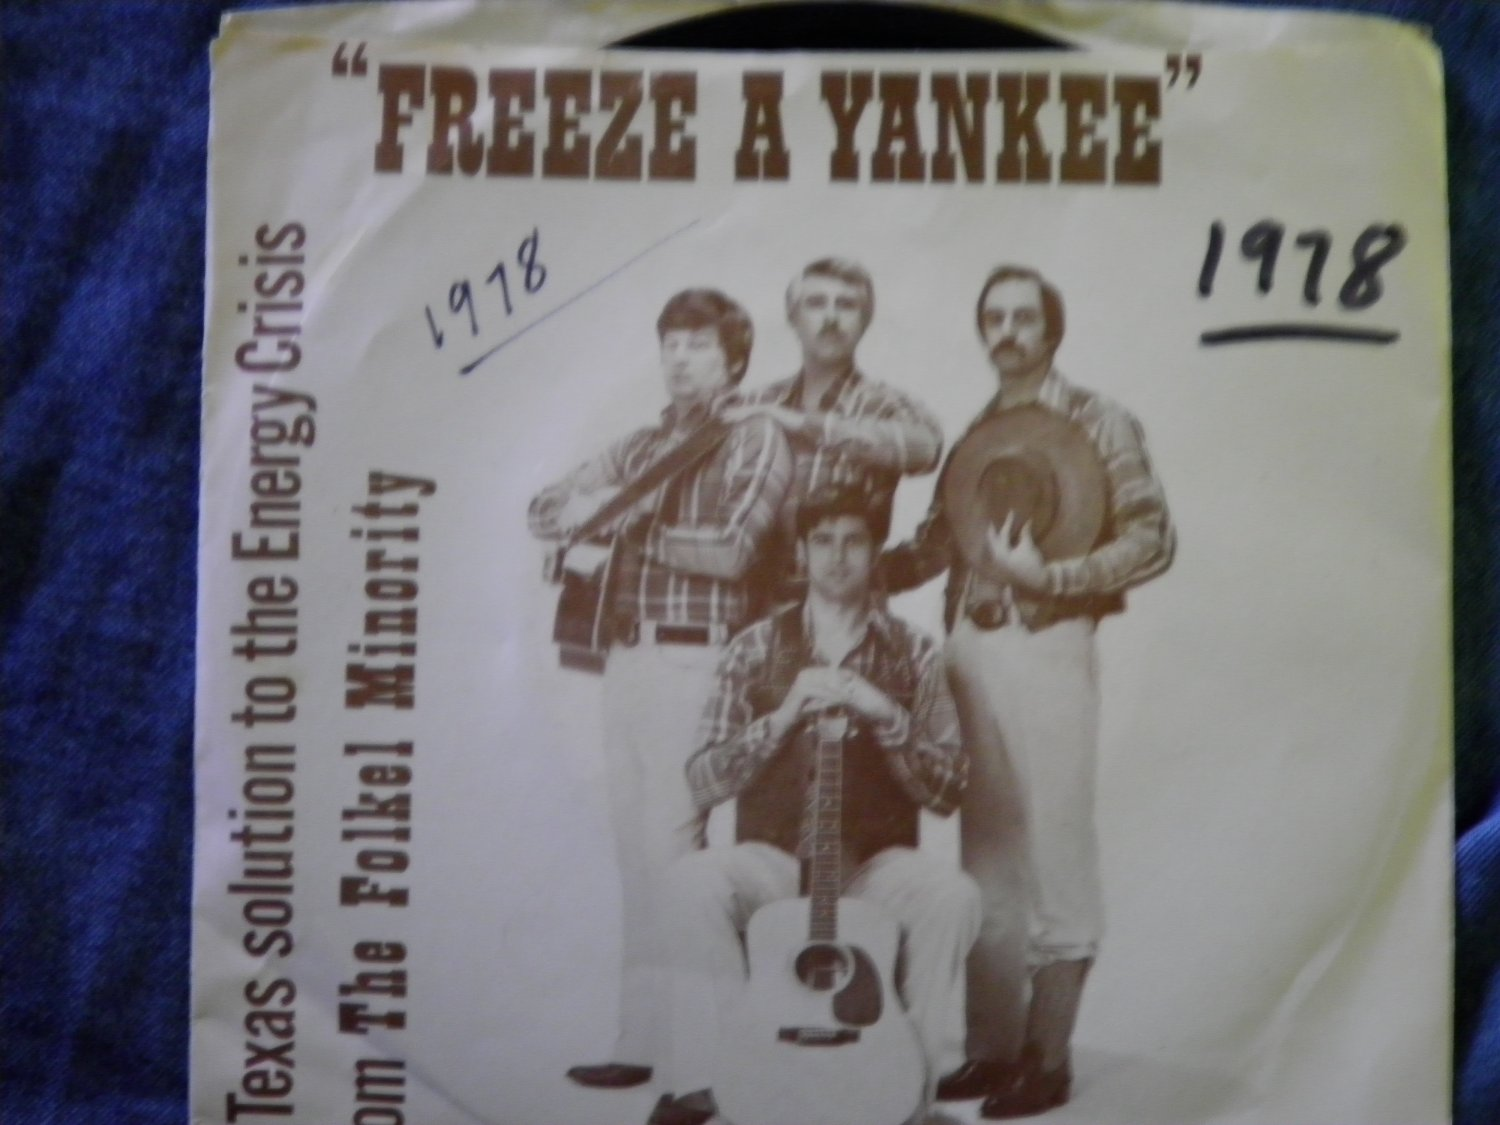 45 THE FOLKEL MINORITY Freeze A Yankee  vintage vinyl record W/PICTURE SLEEVE